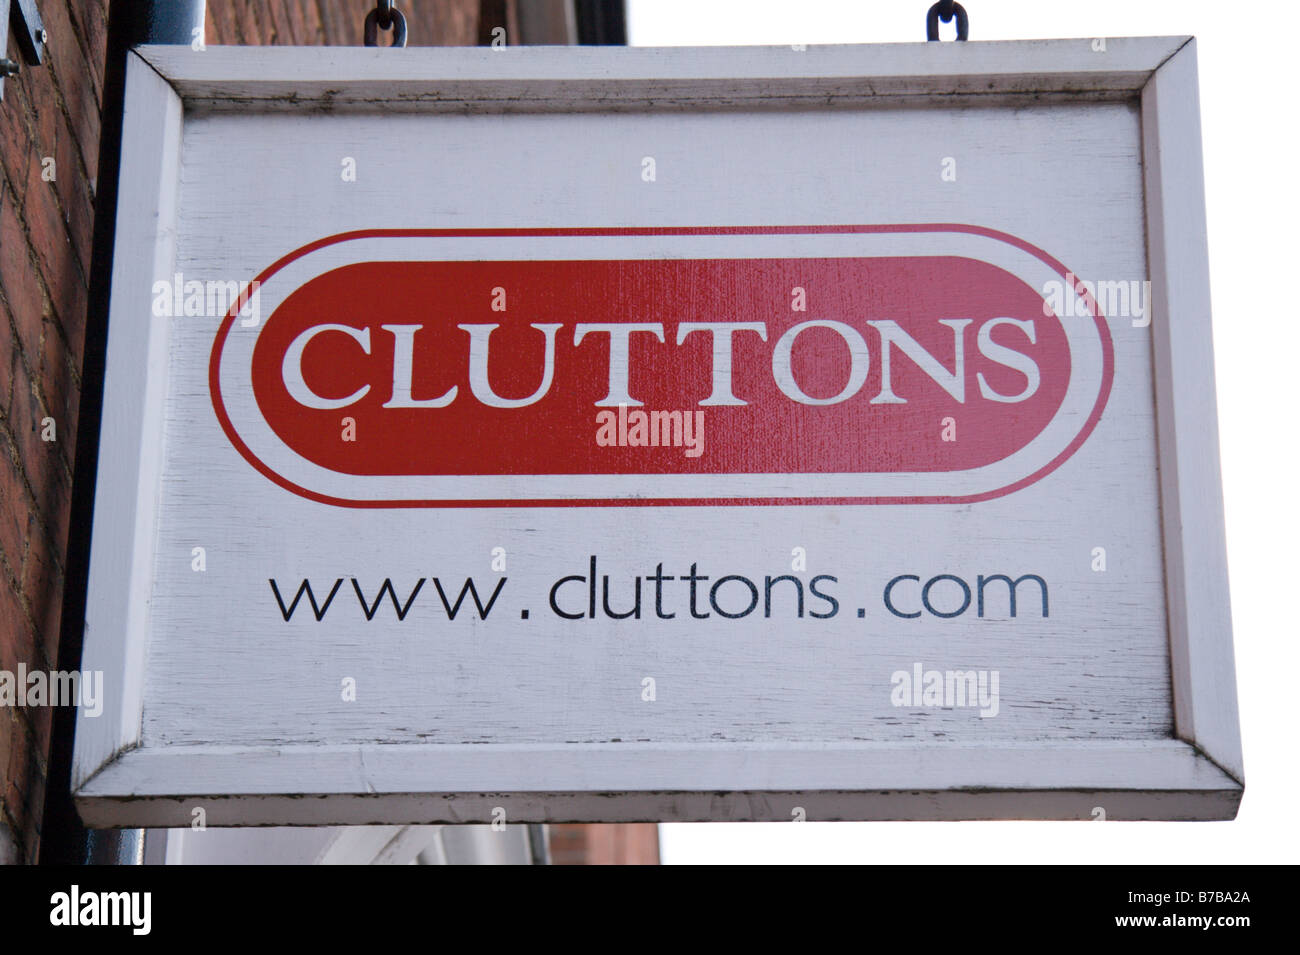 Sign outside a branch of Cluttons estate agents in Oxford, England. Jan 2009 - Stock Image